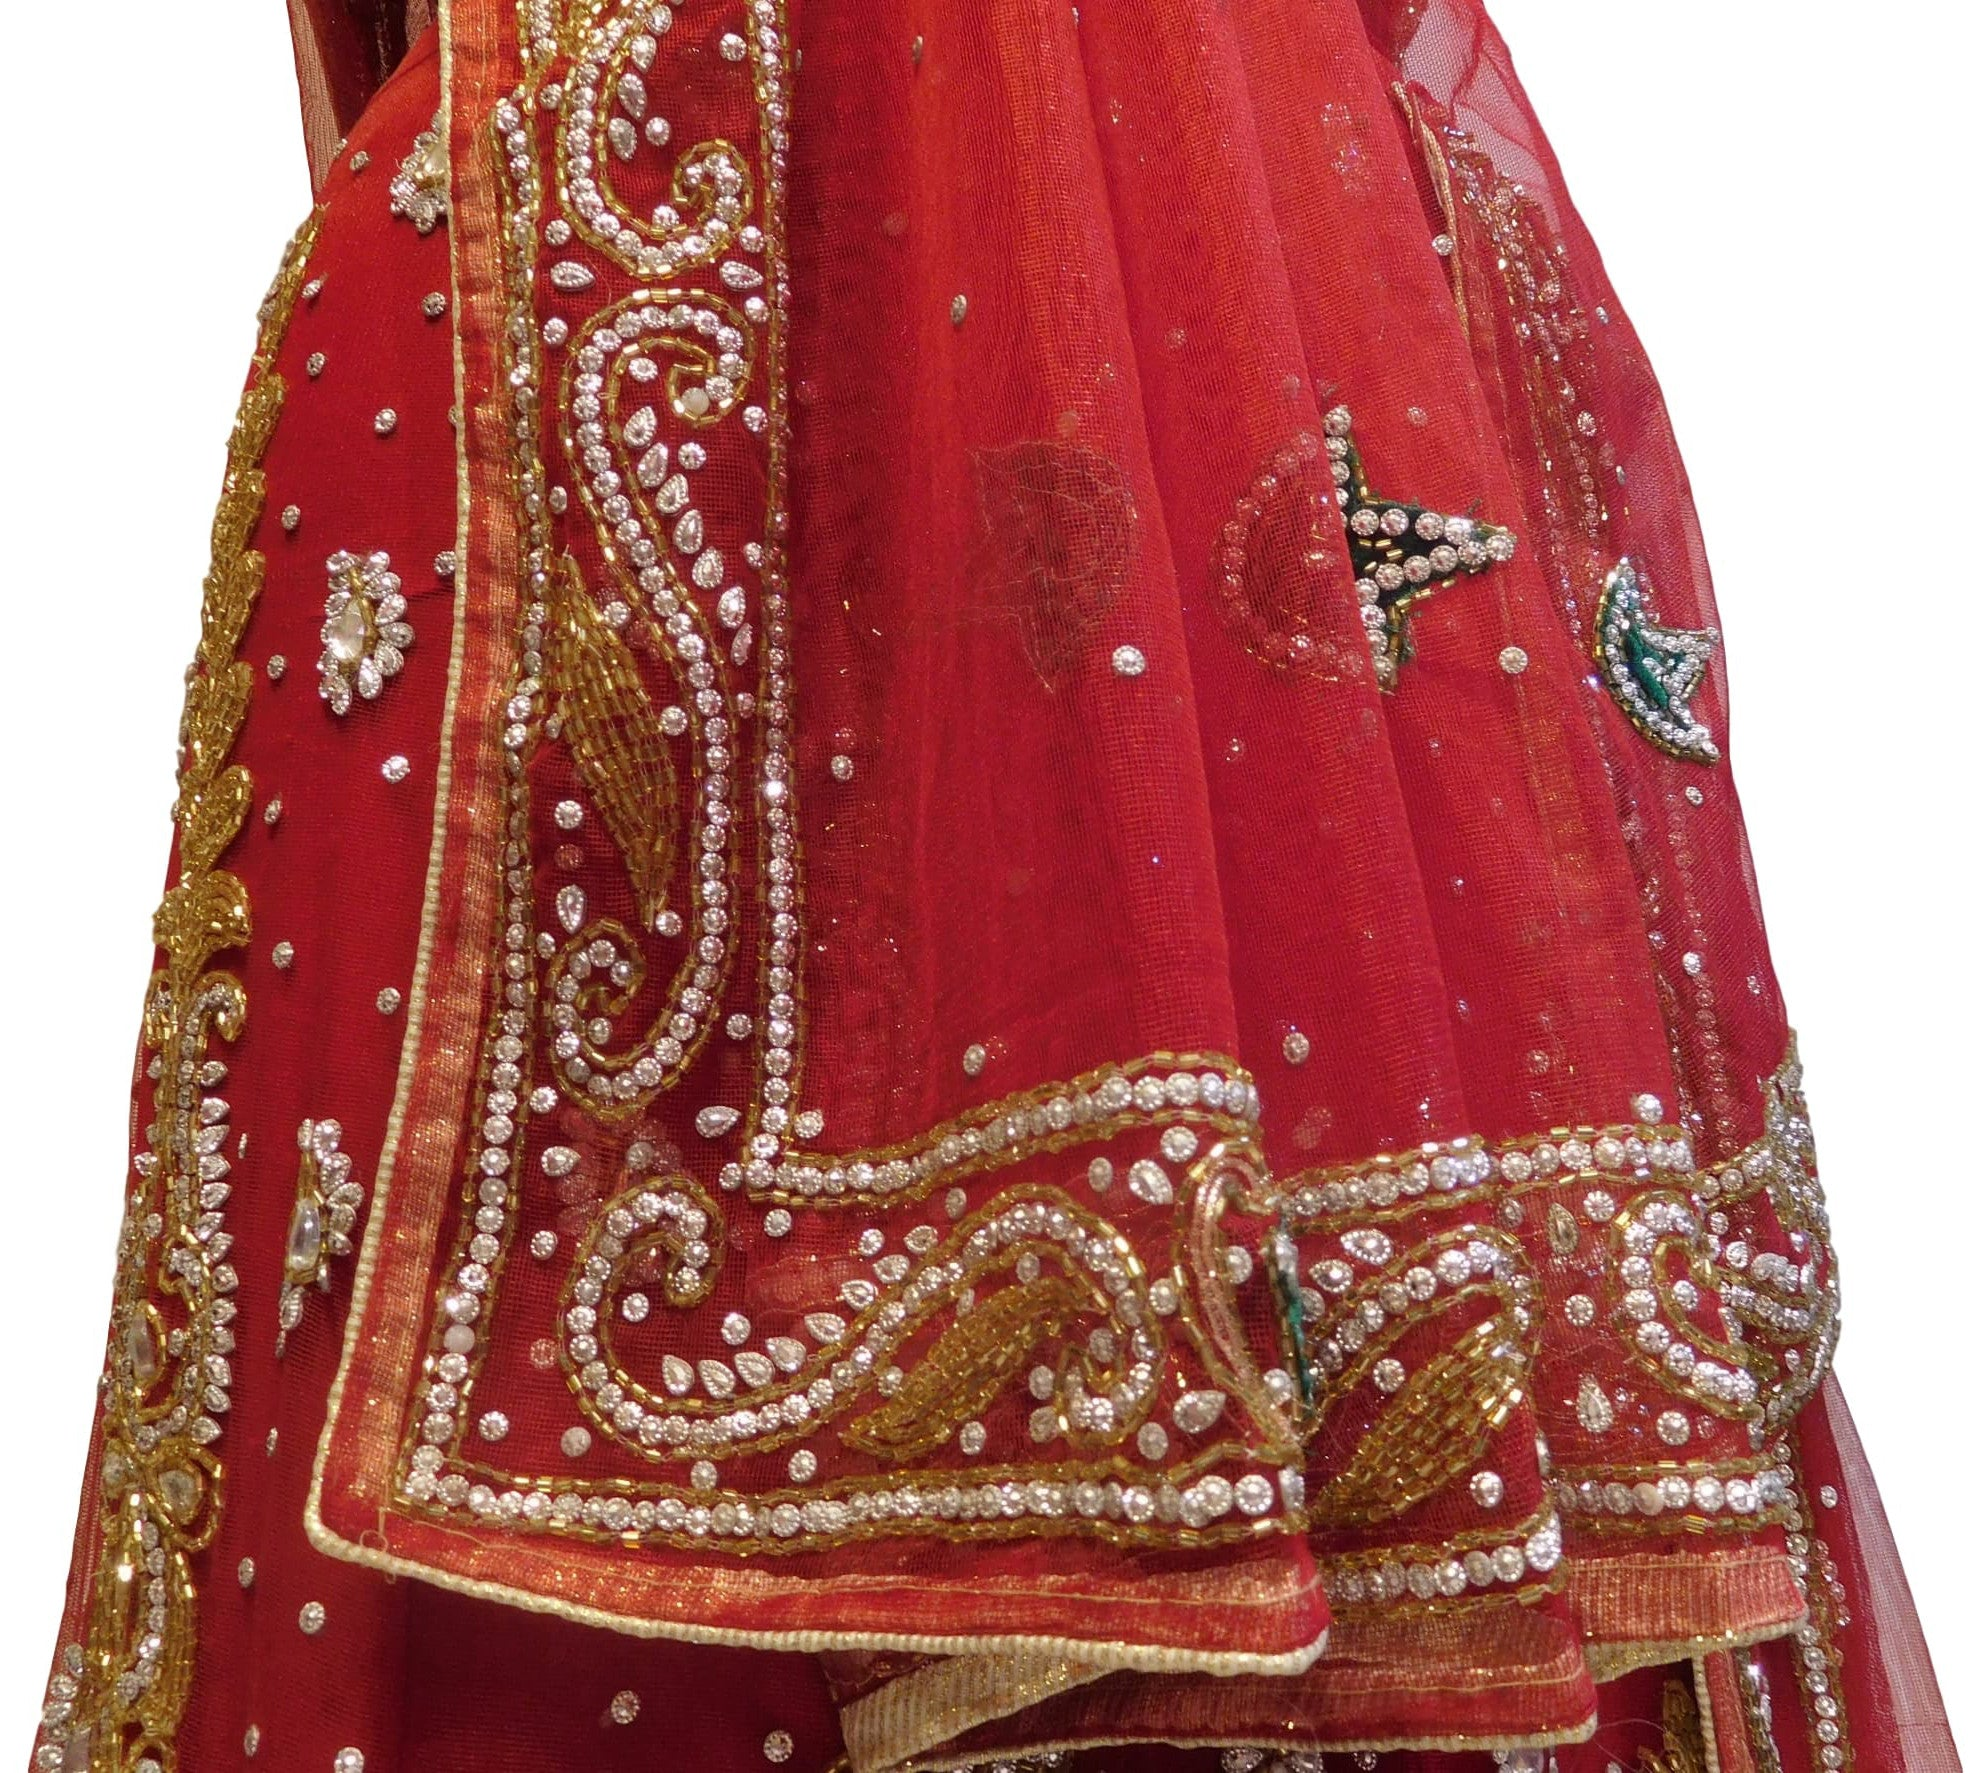 Red Designer Bridal Hand Embroidery Work Net Lahenga With Net Dupatta & Net Blouse